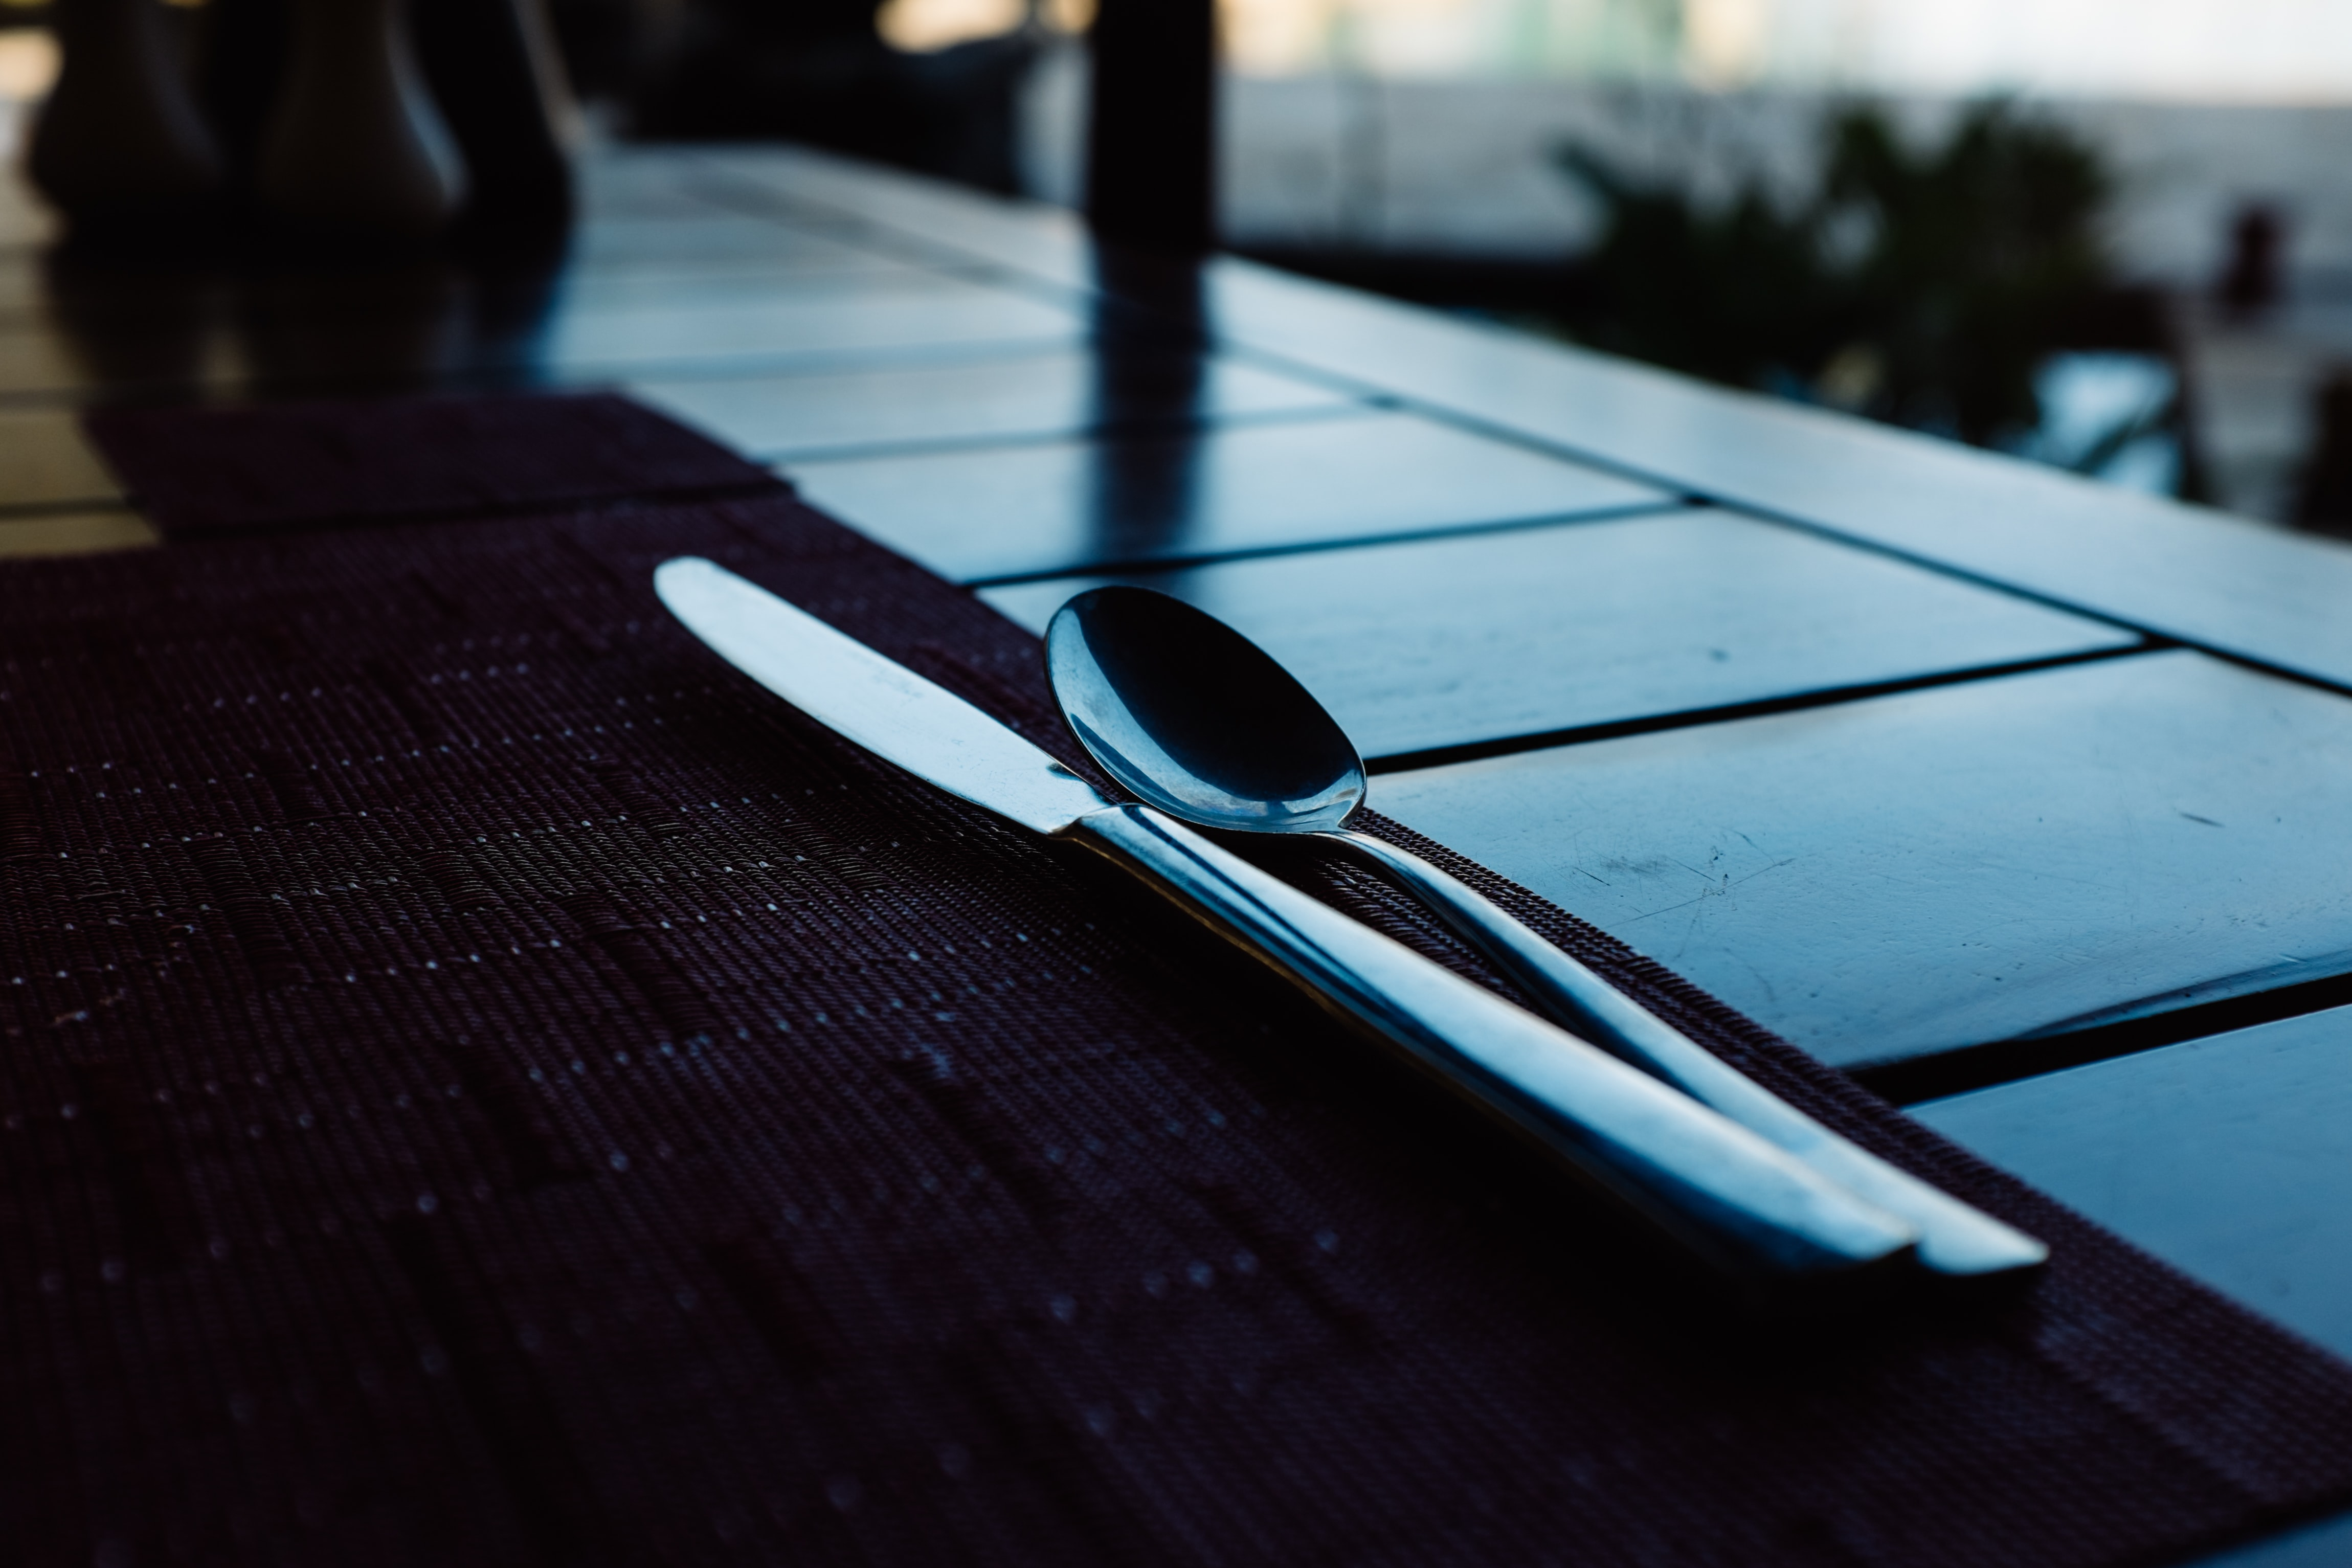 Macro of shiny knife and spoon on a placemat near a window on a slatted table